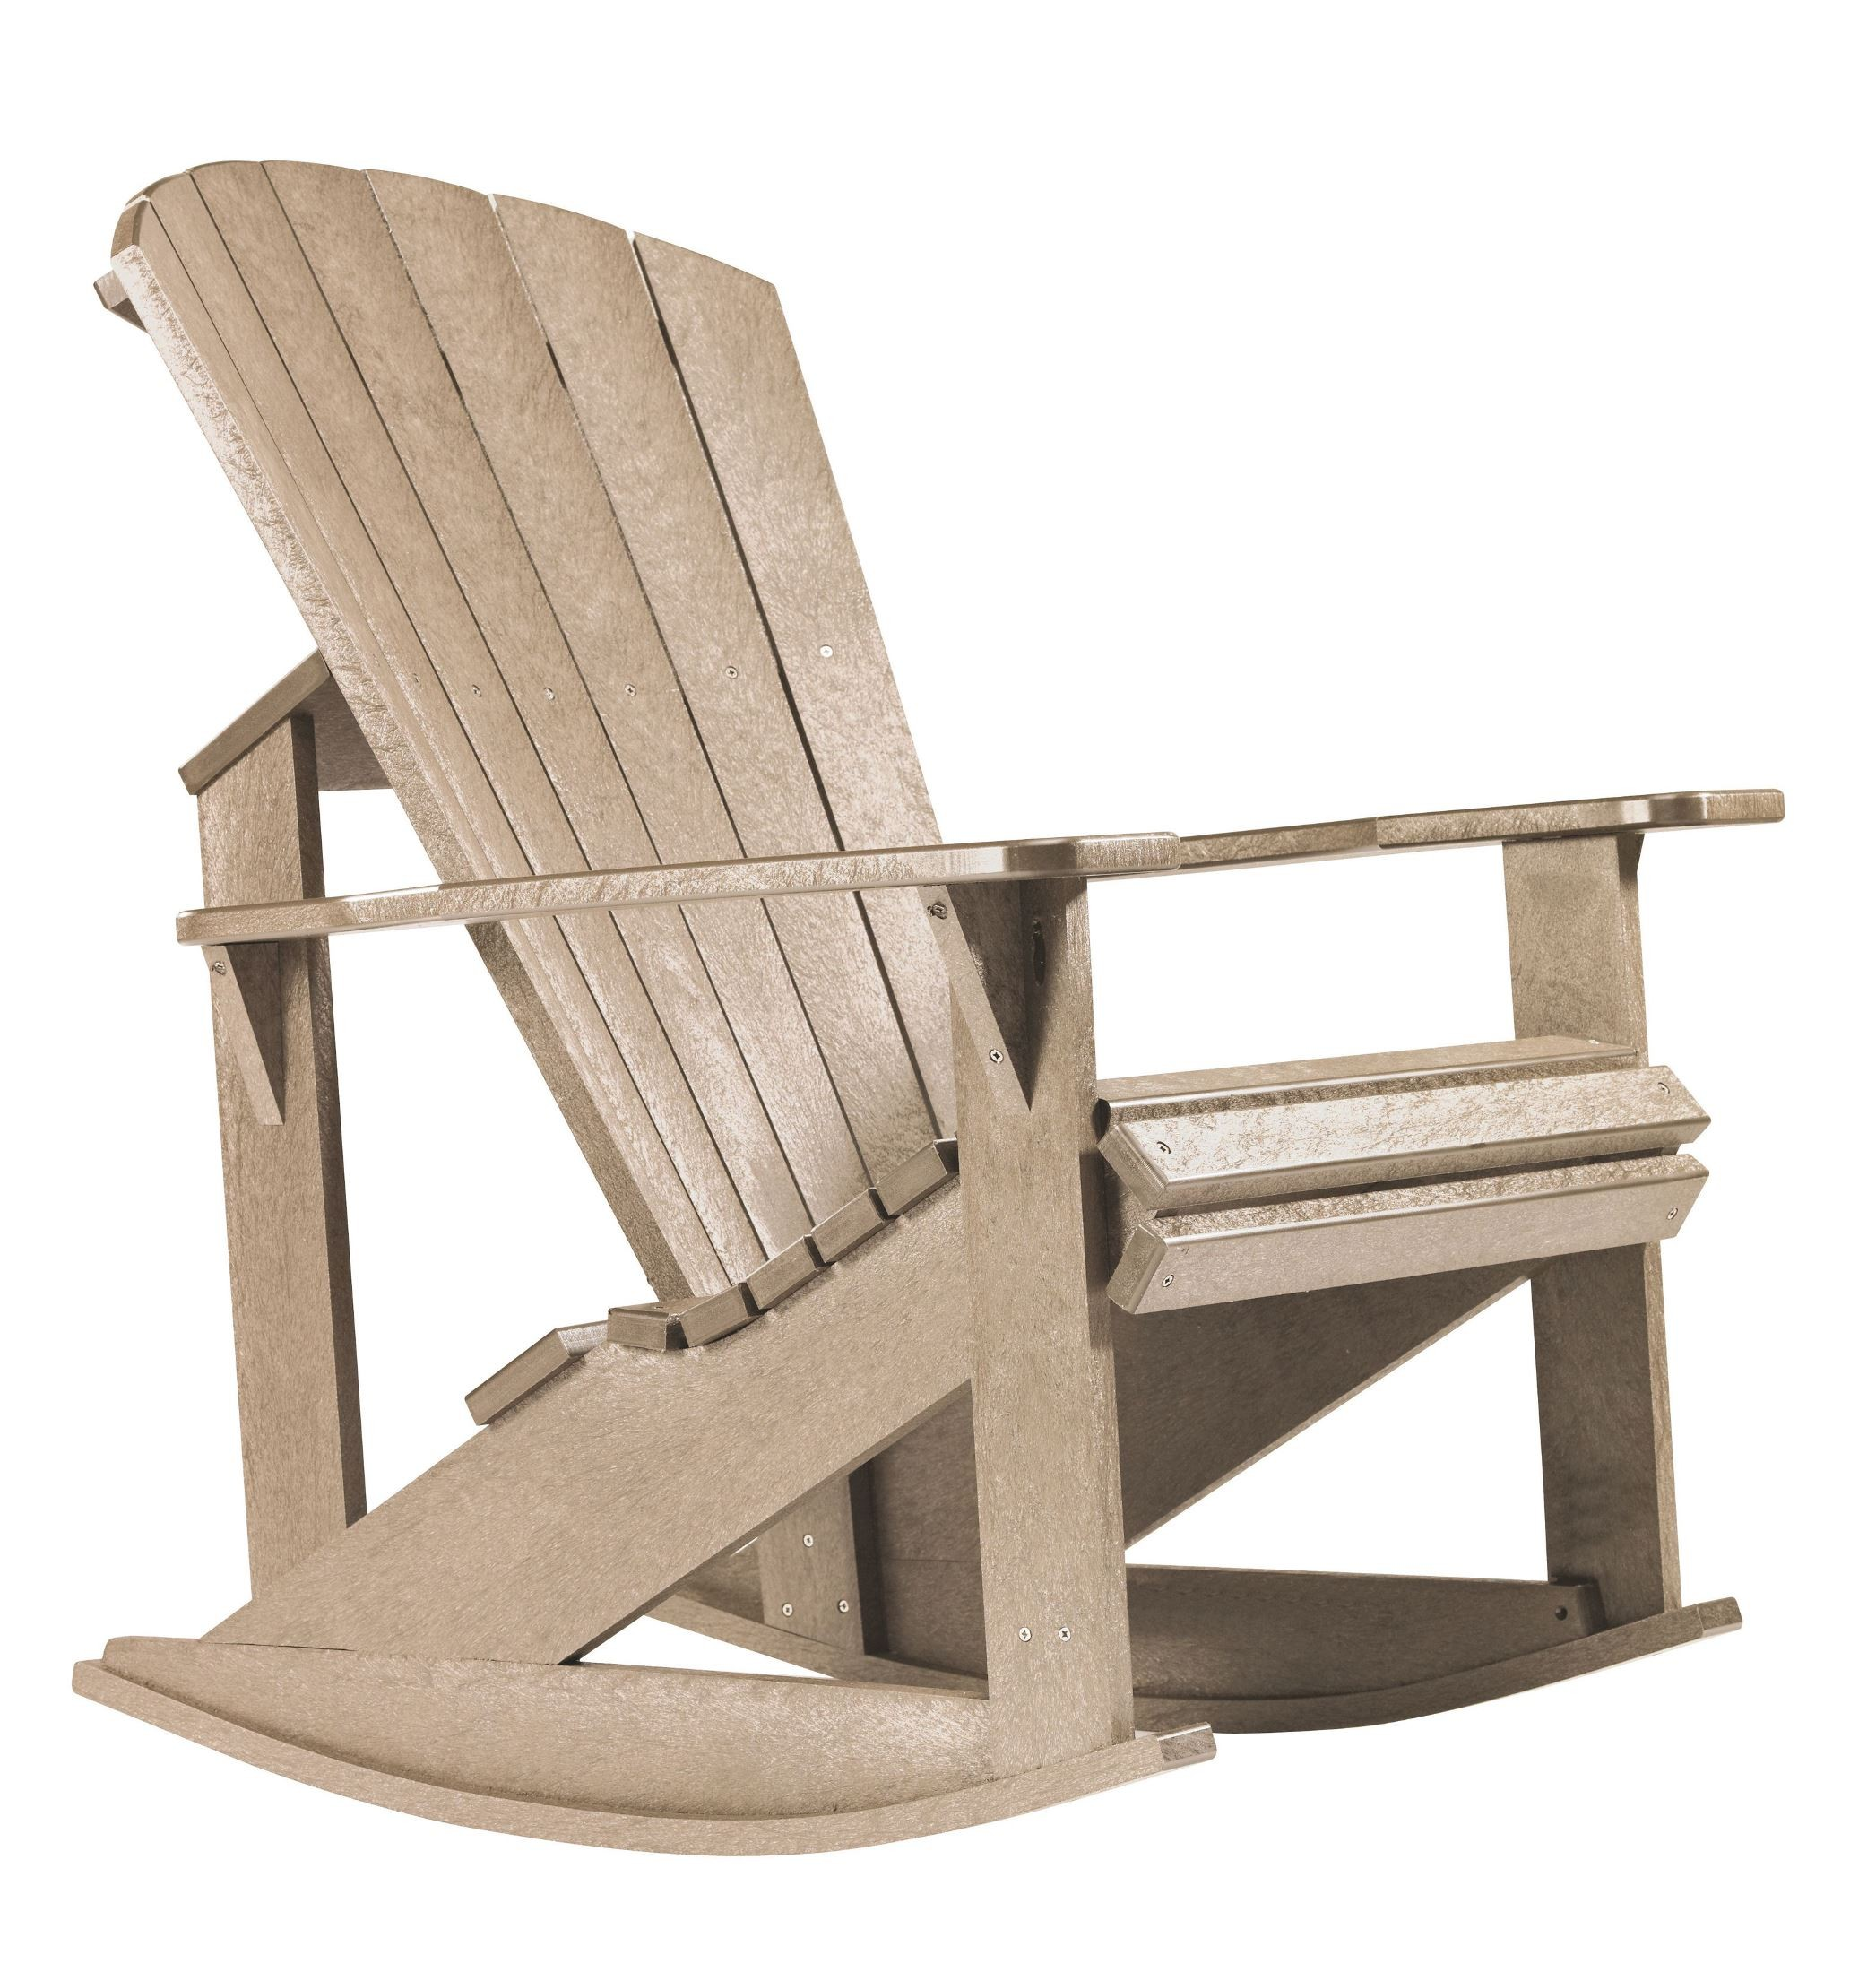 Adirondack Rocking Chair Plans Generations Beige Adirondack Rocking Chair From Cr Plastic